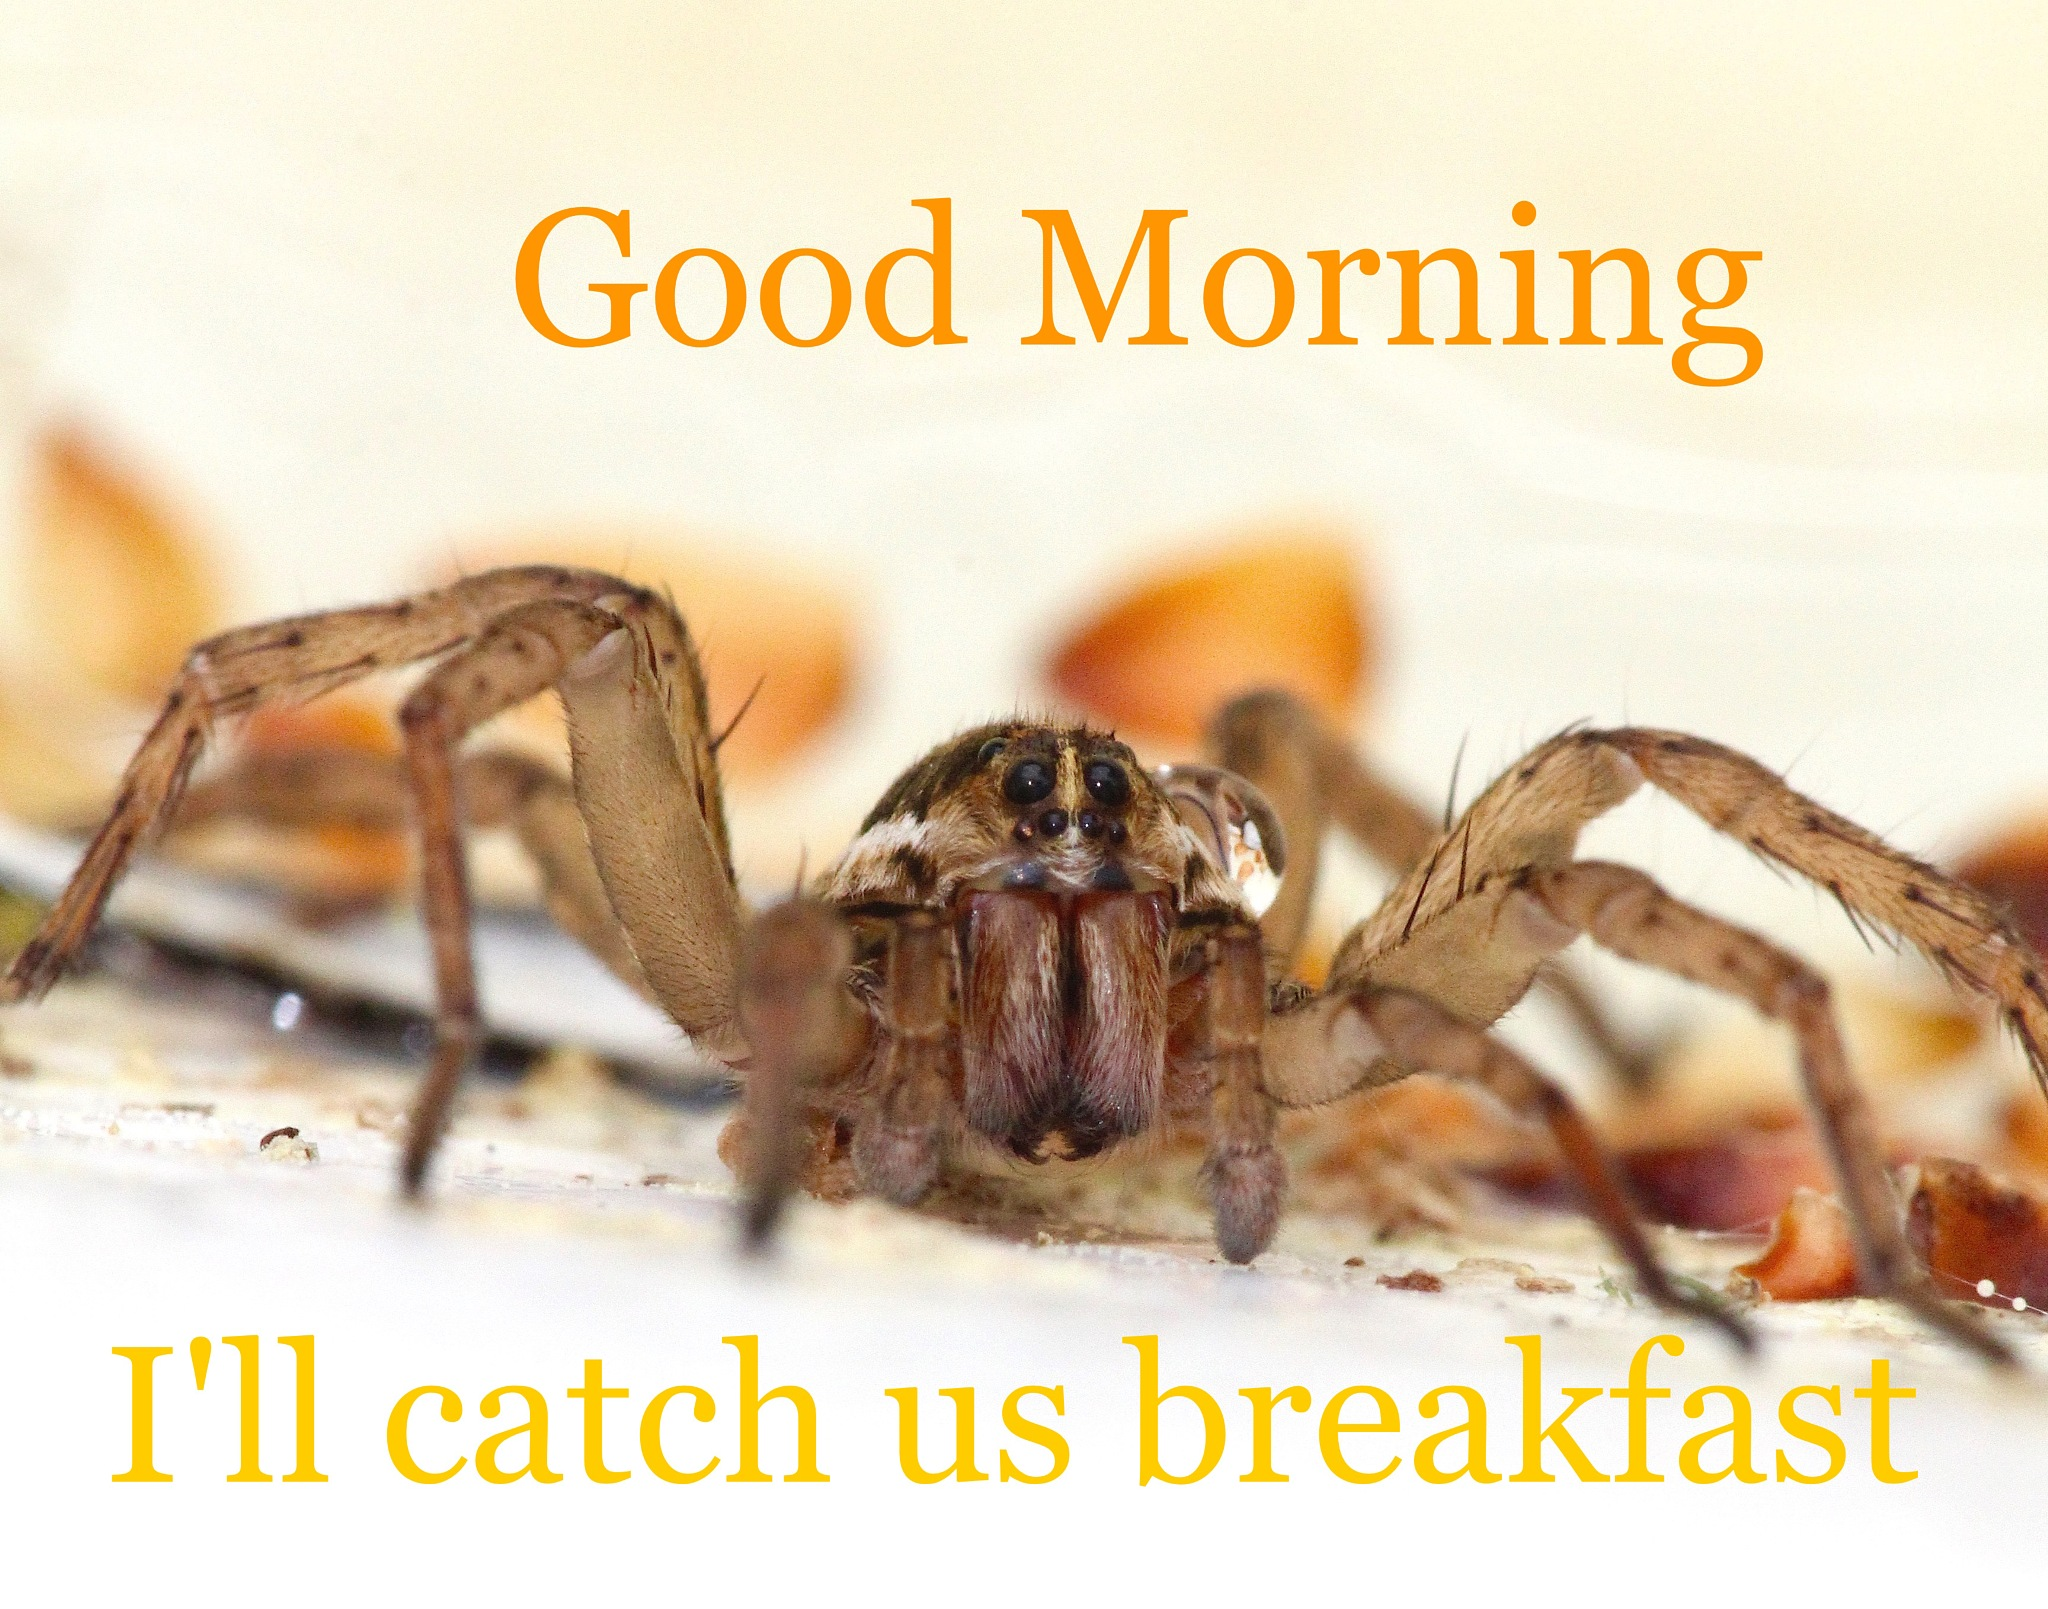 Good Morning Spider by MyMagnolia